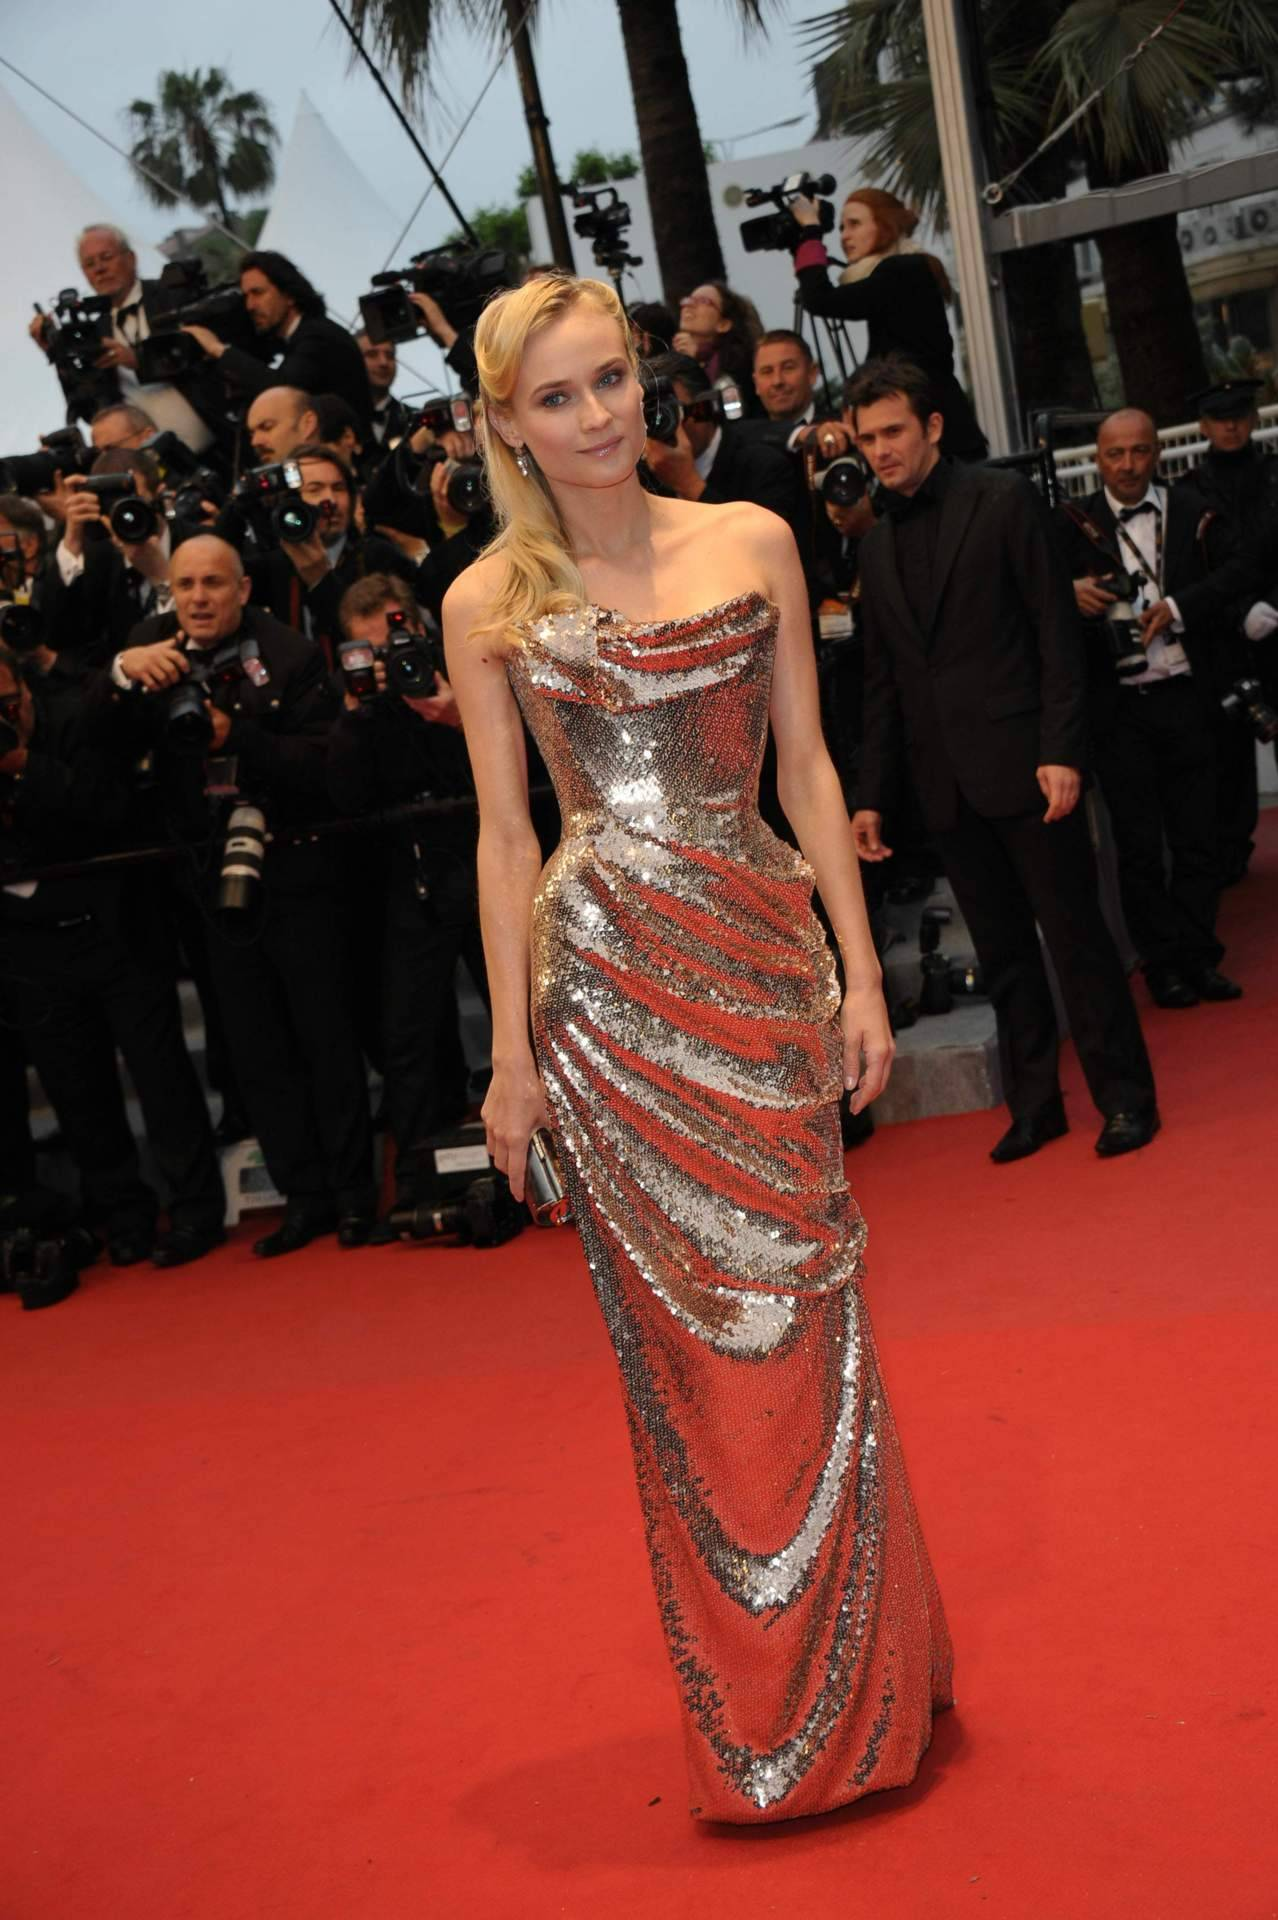 Diane Kruger in Vivienne Westwood at the premiere of Amour at the Cannes Film Festival, May 20th A tall pale blonde in beautiful sculpted Vivienne Westwood!  It's too much!